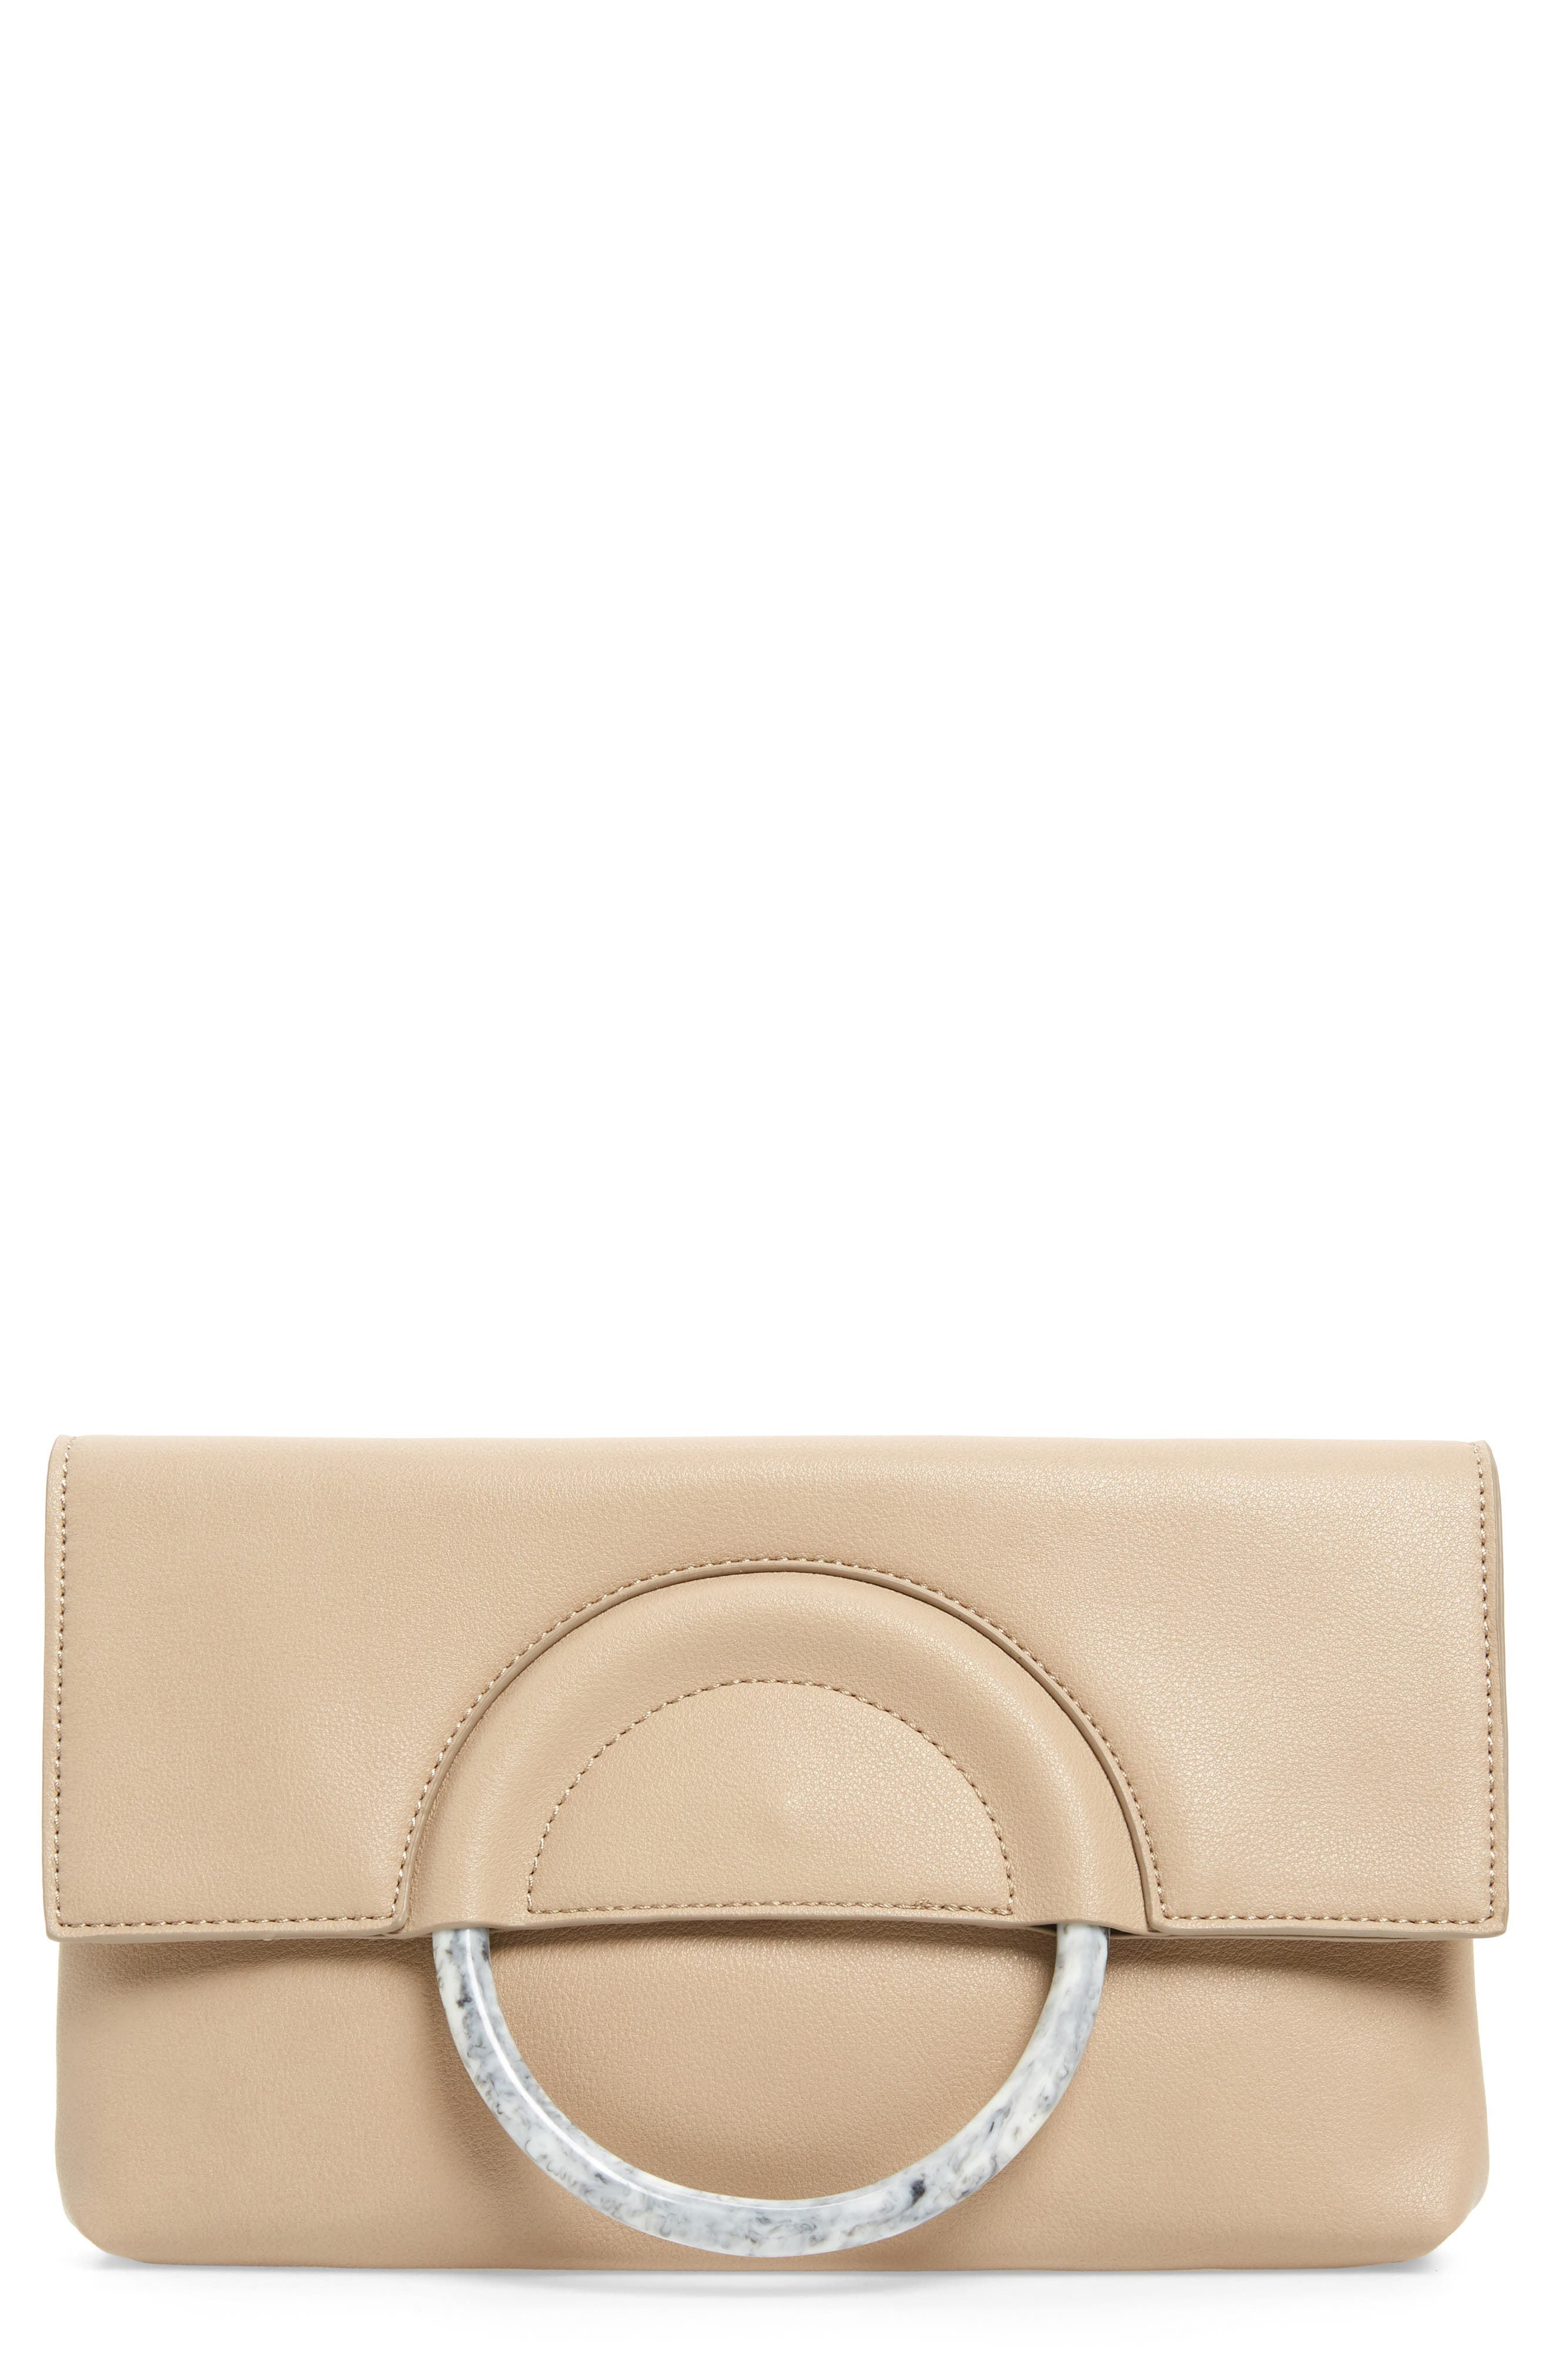 LEITH Resin Handle Clutch, Main, color, TAUPE/ IVORY